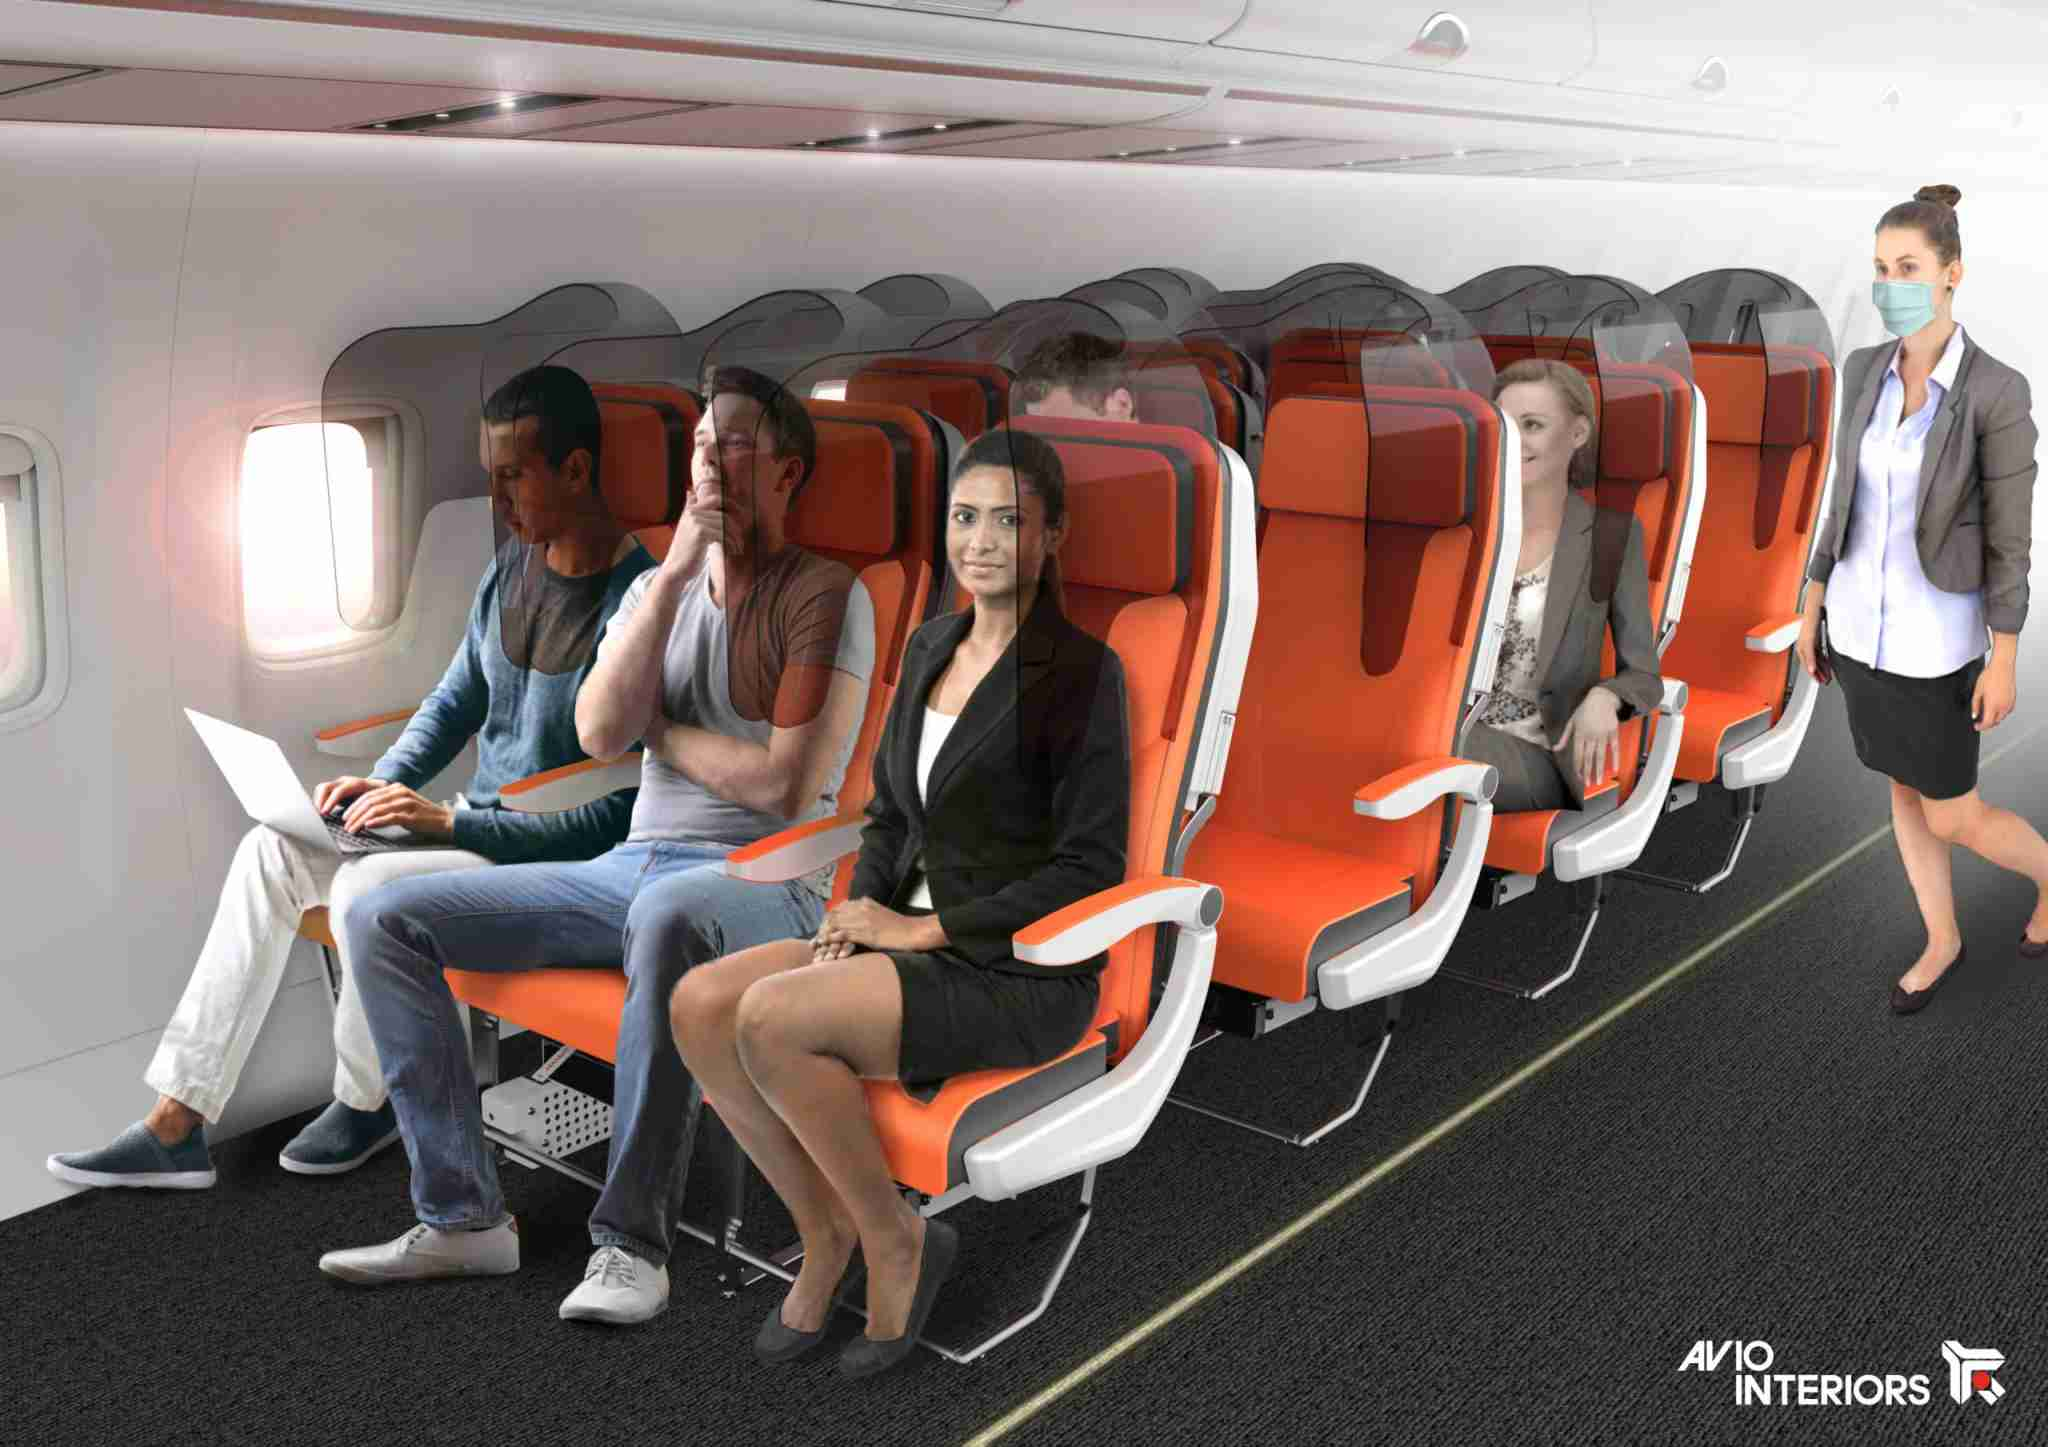 The Glassafe seat design proposed by Italian firm Aviointeriors. (Photo courtesy of Aviointeriors).